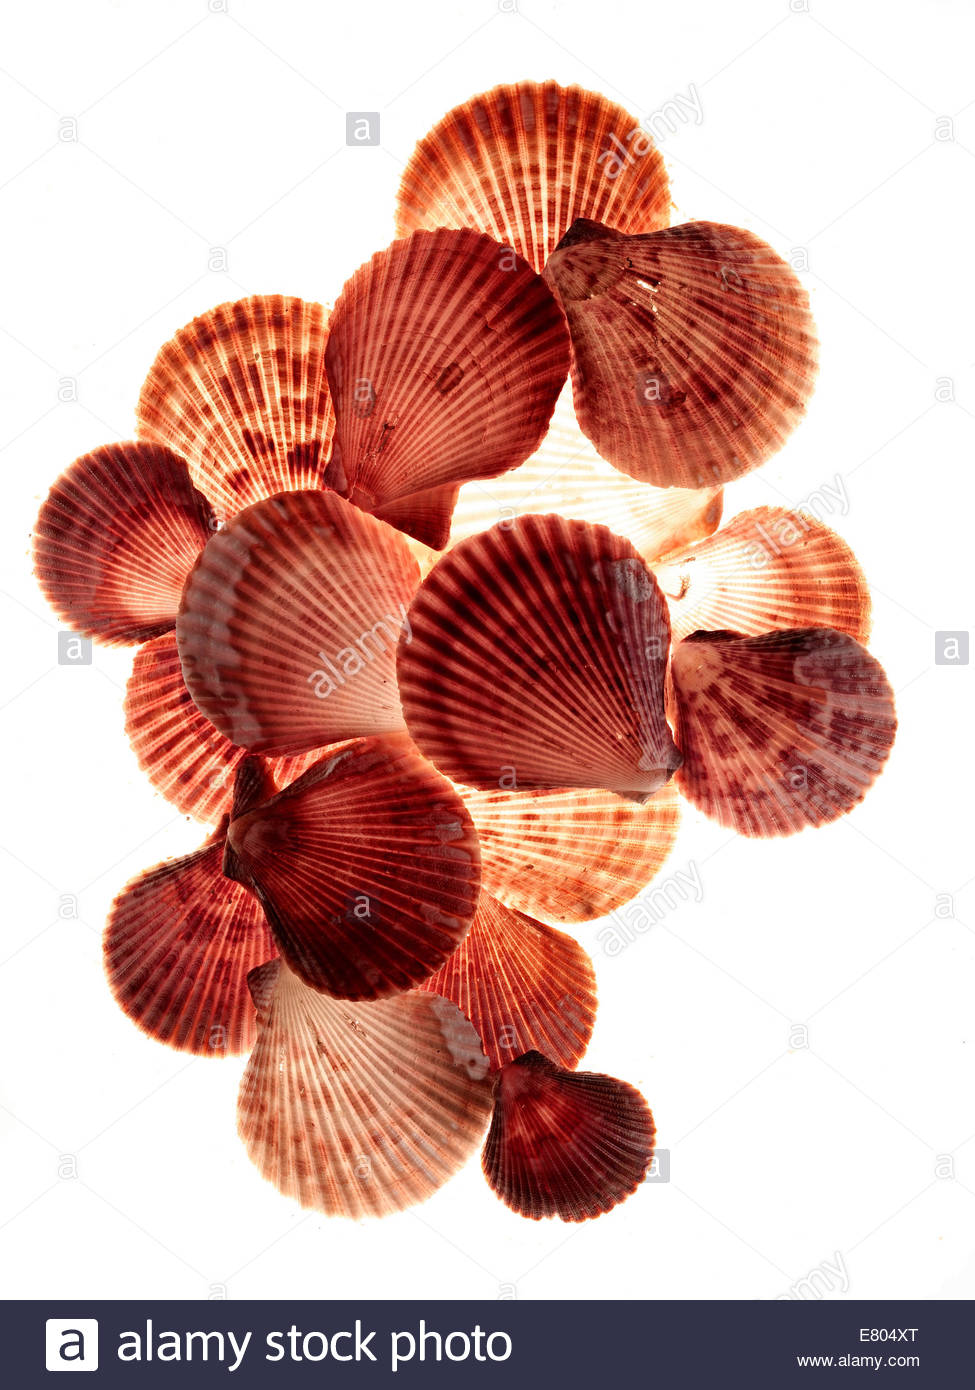 Red & white cockle Sea shells - Stock Image